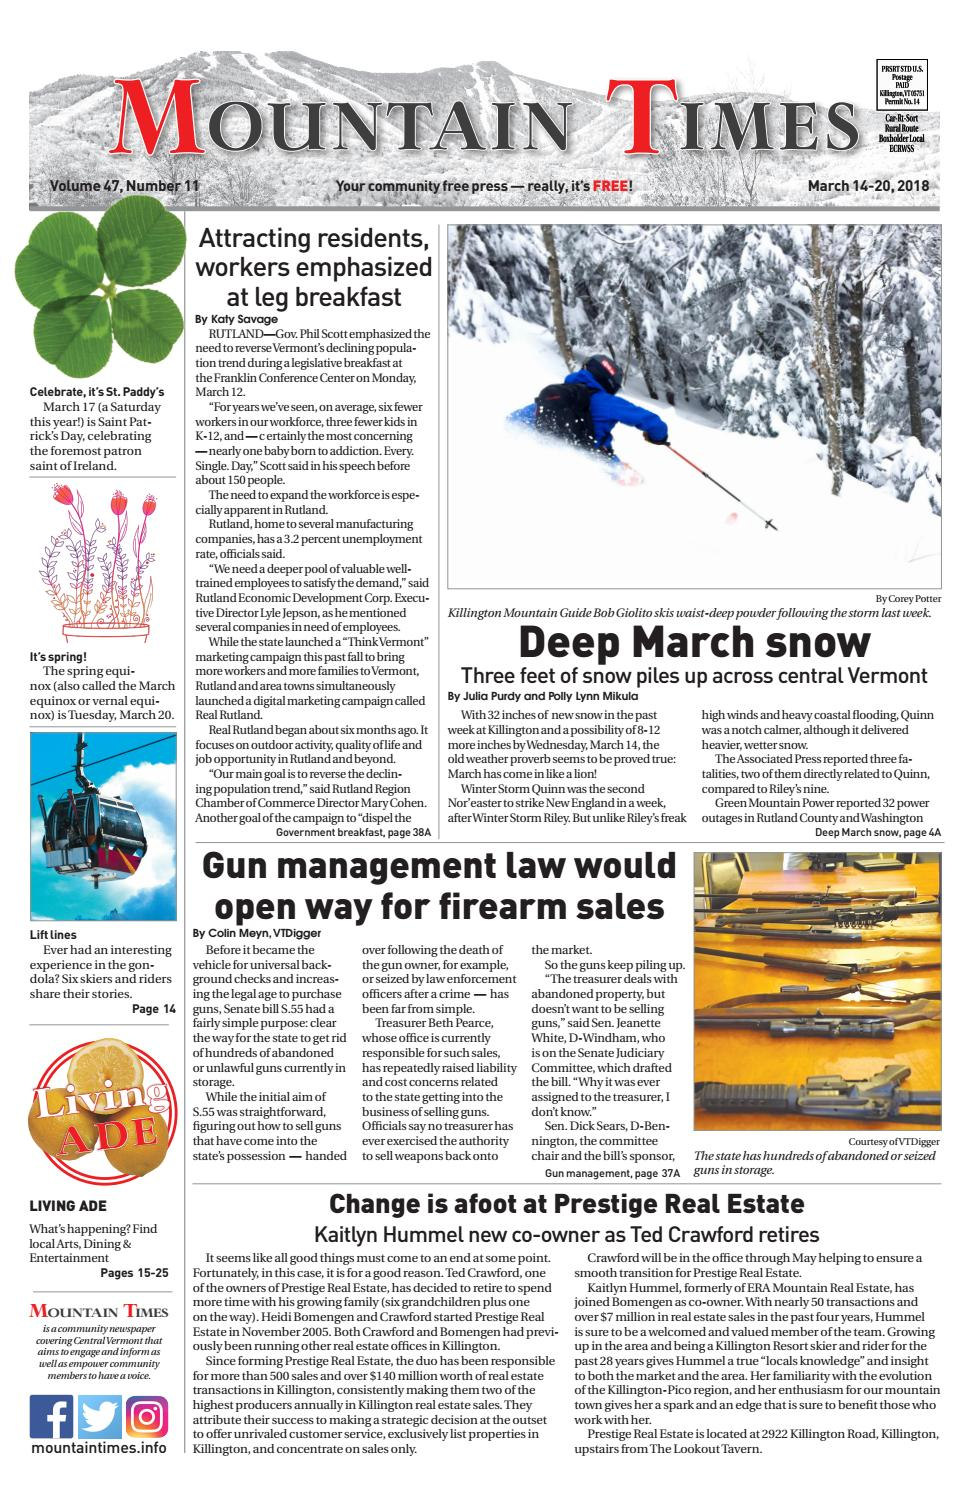 Mountaint Times March 14 2018 By Polly Lynn